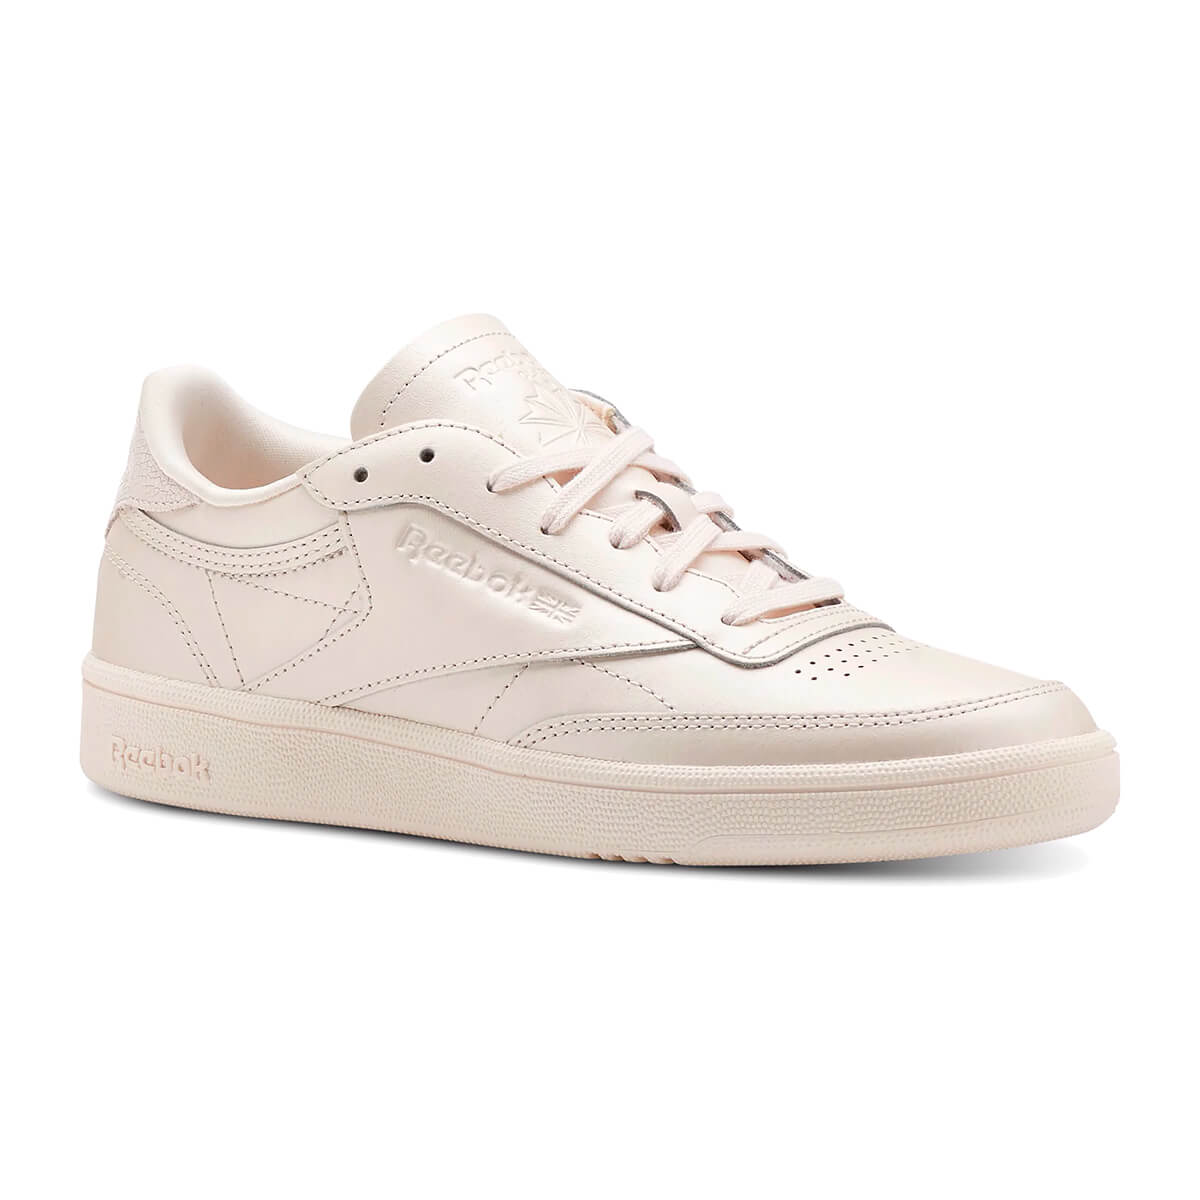 New-Authentic-Reebok-Club-C-85-Femme-Baskets-Mode-Chaussures-Toutes-les-tailles-NEW-IN-BOX miniature 27